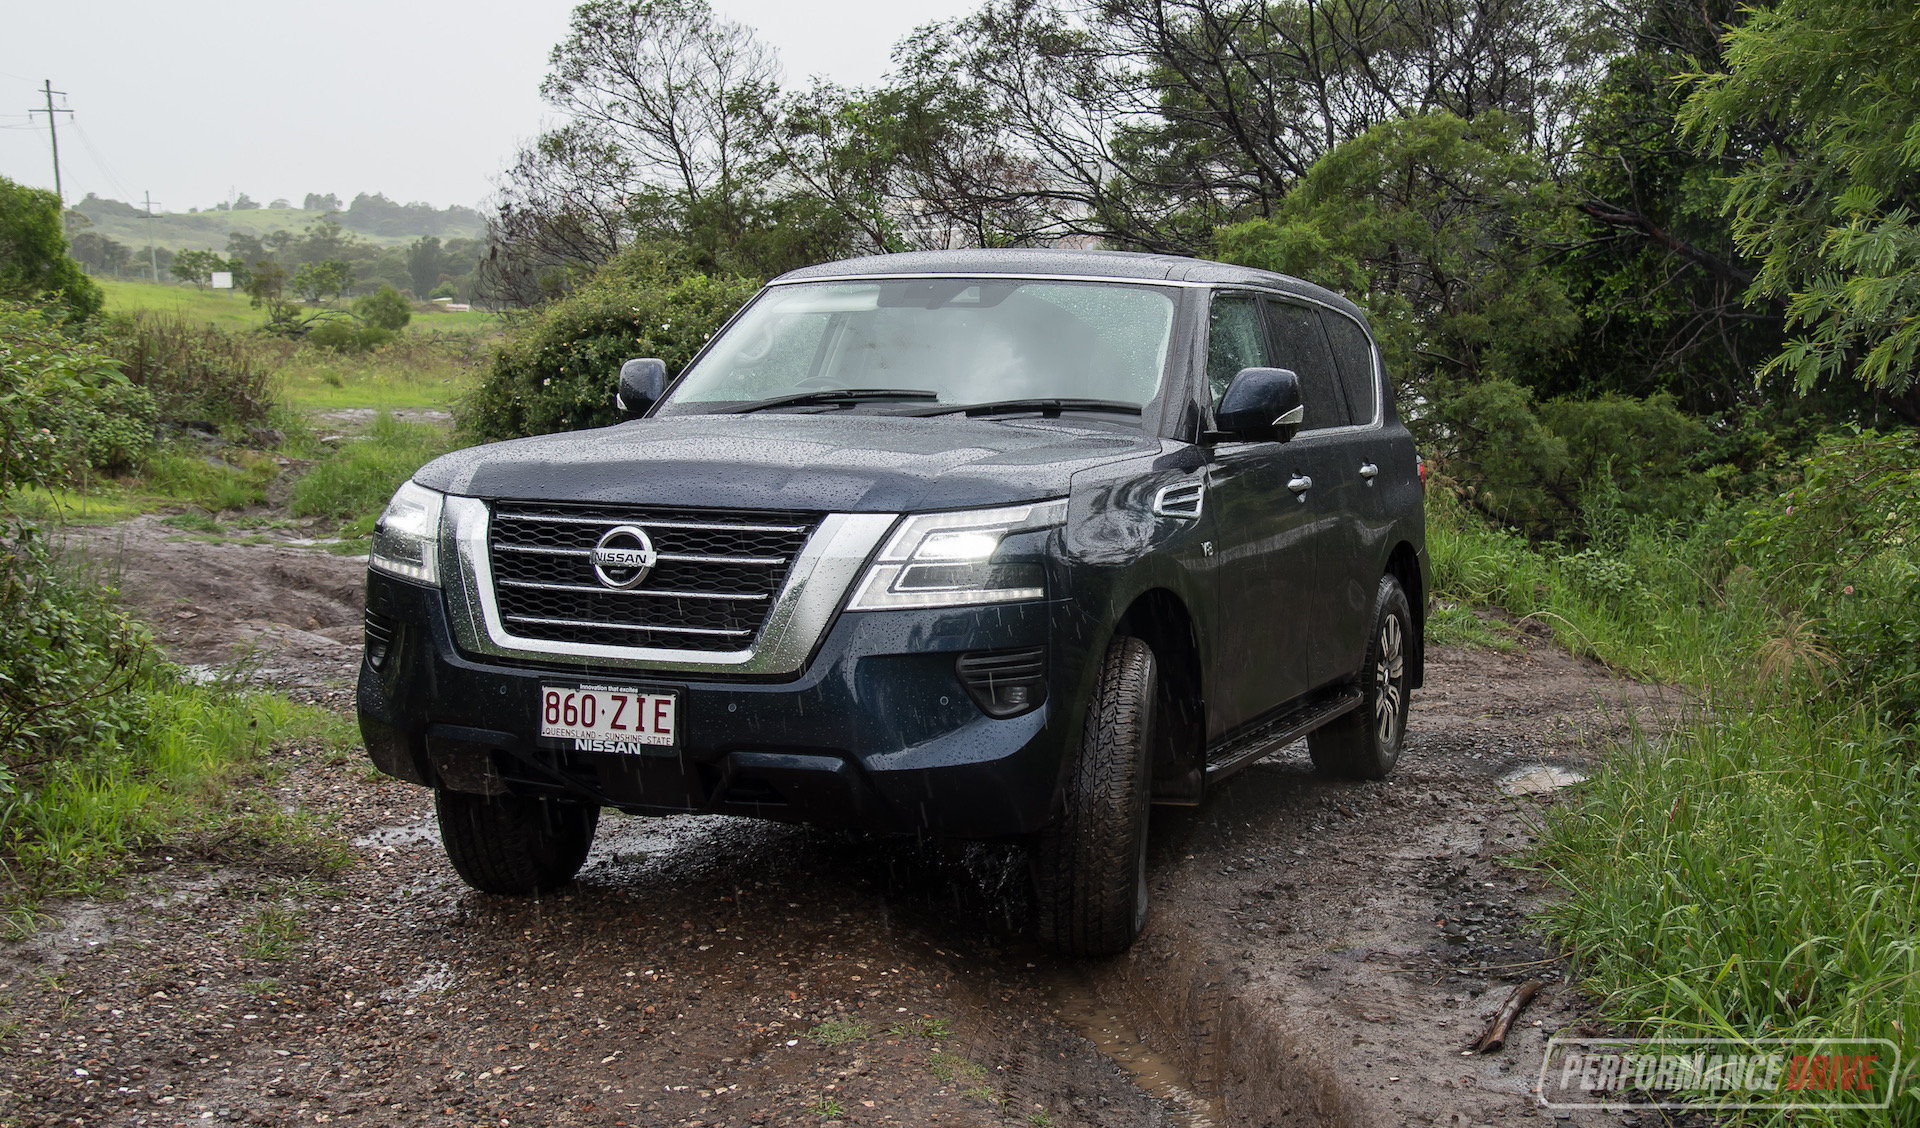 2020 nissan patrol ti review (video) | performancedrive